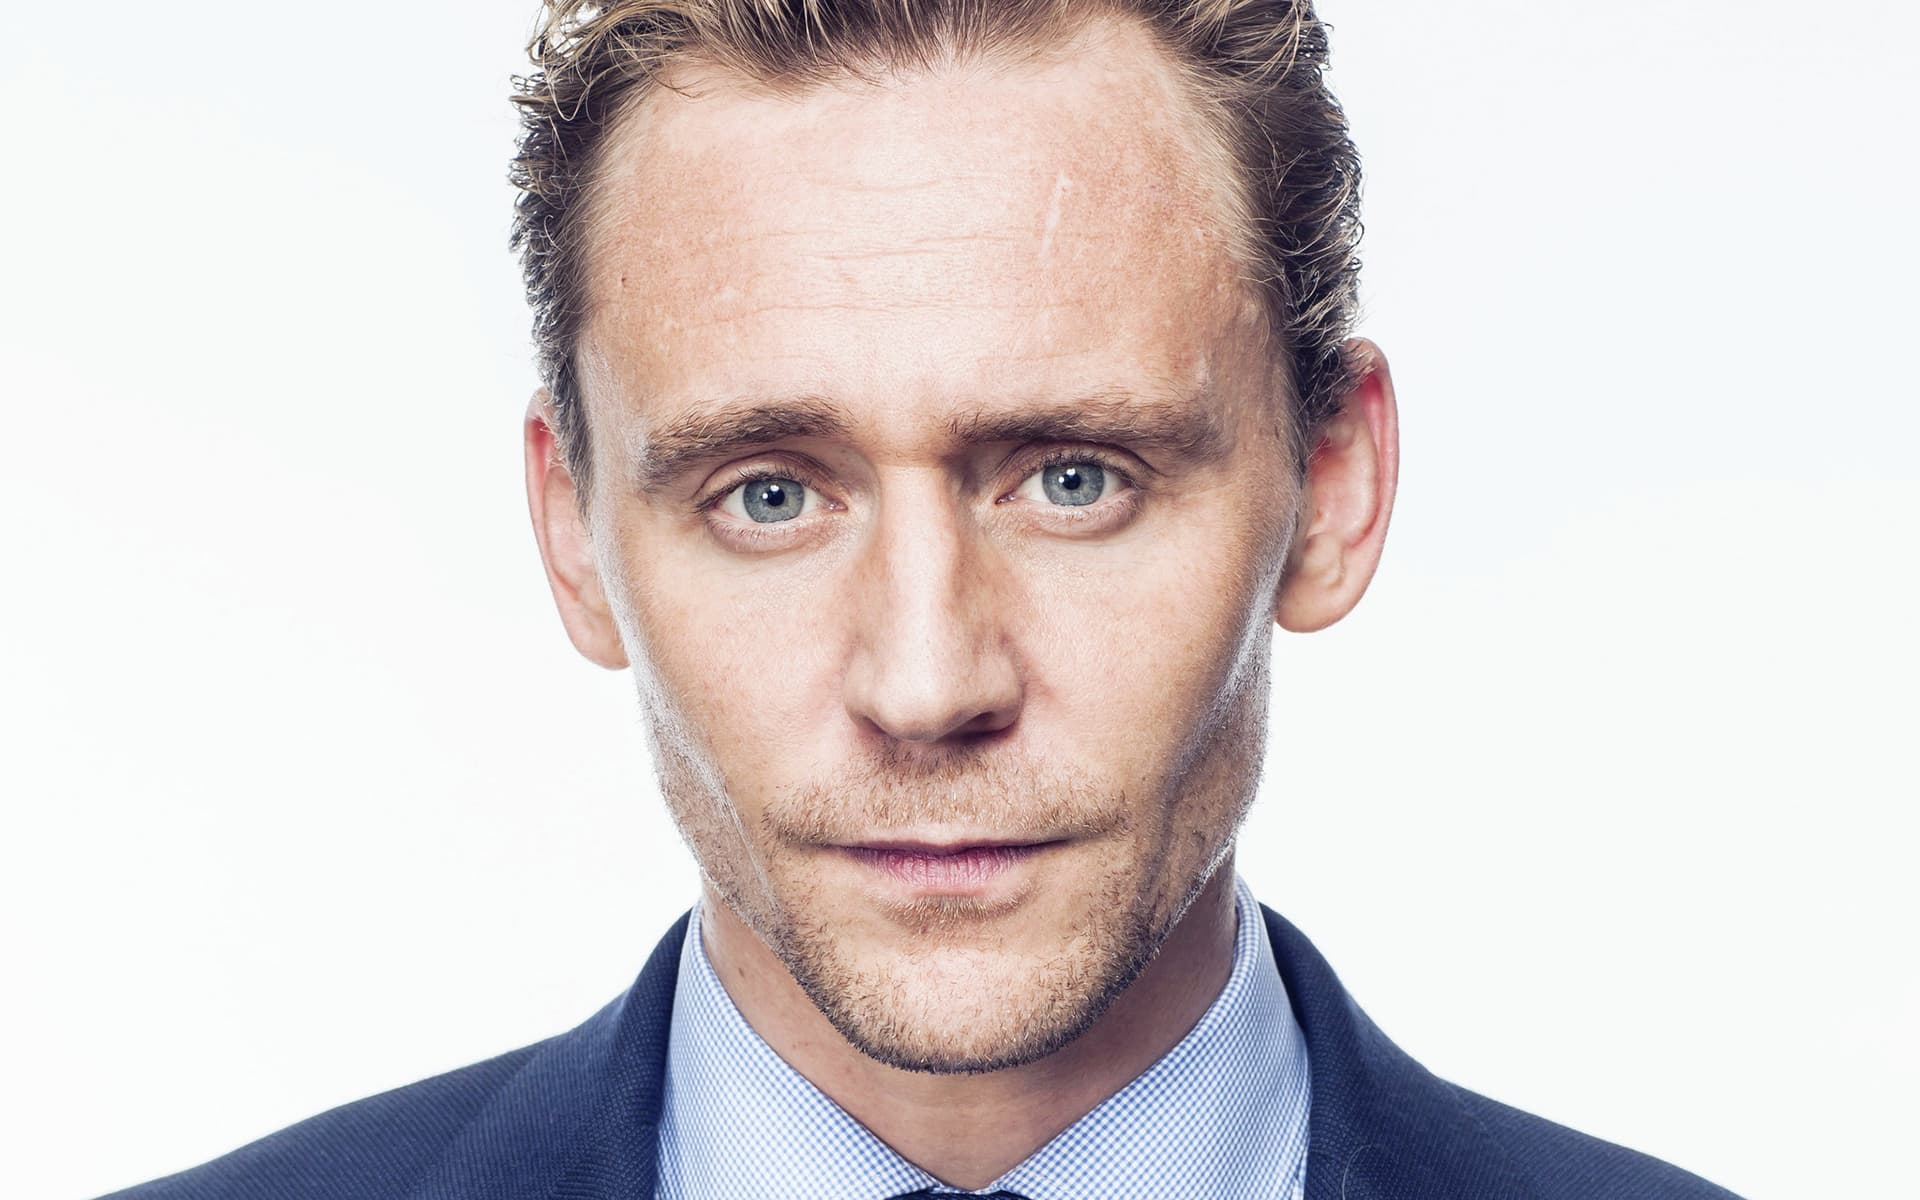 Tom Hiddleston wallpaper white background HD images